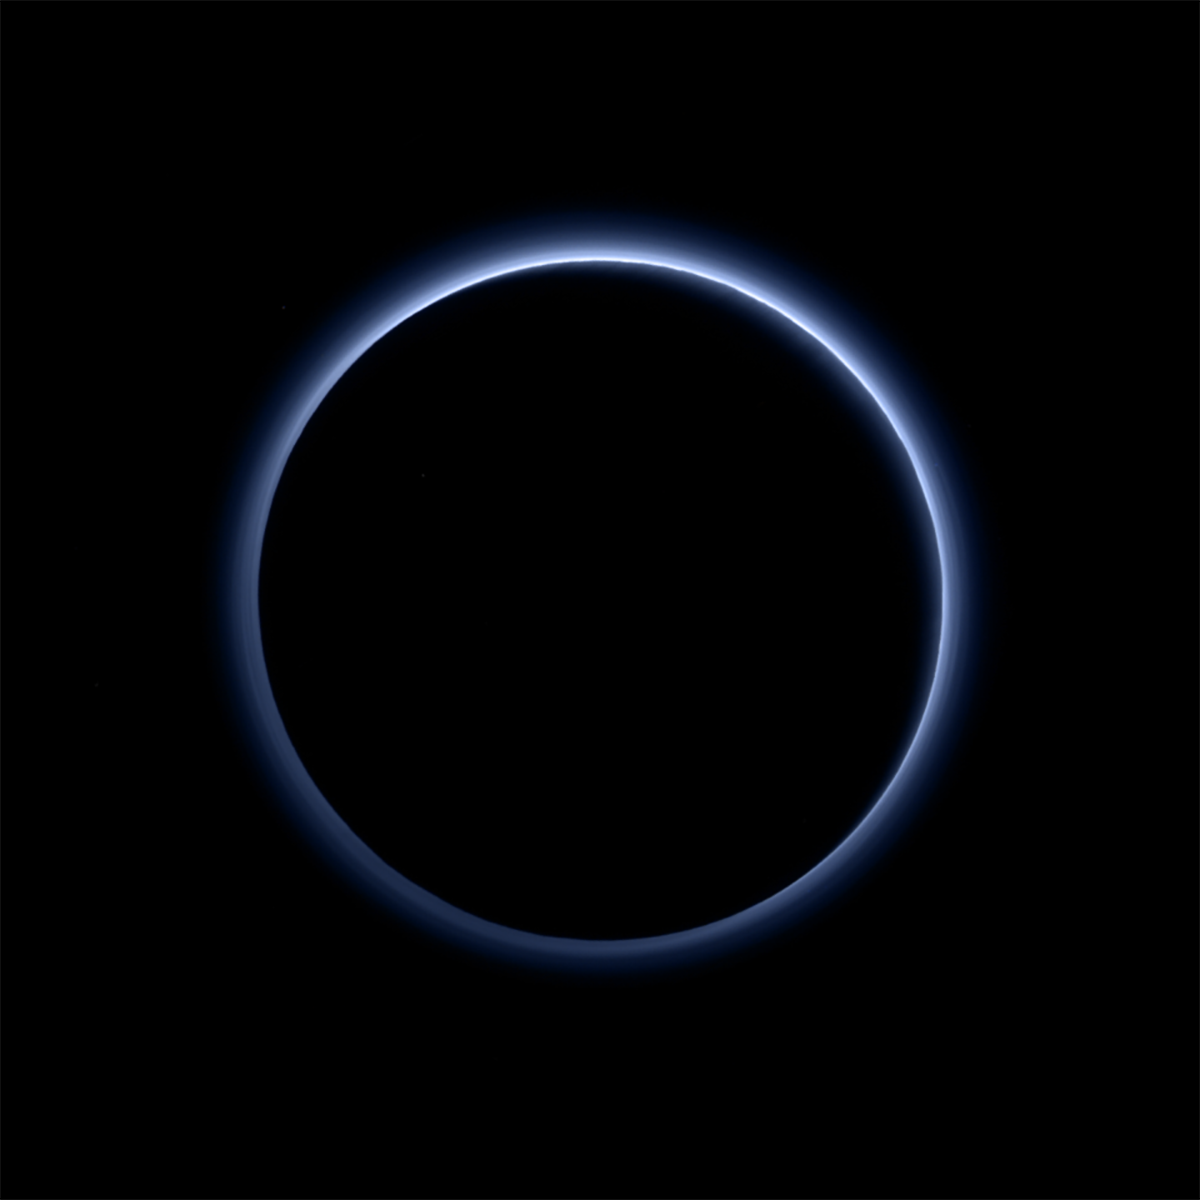 Skies are blue on Pluto, New Horizons finds